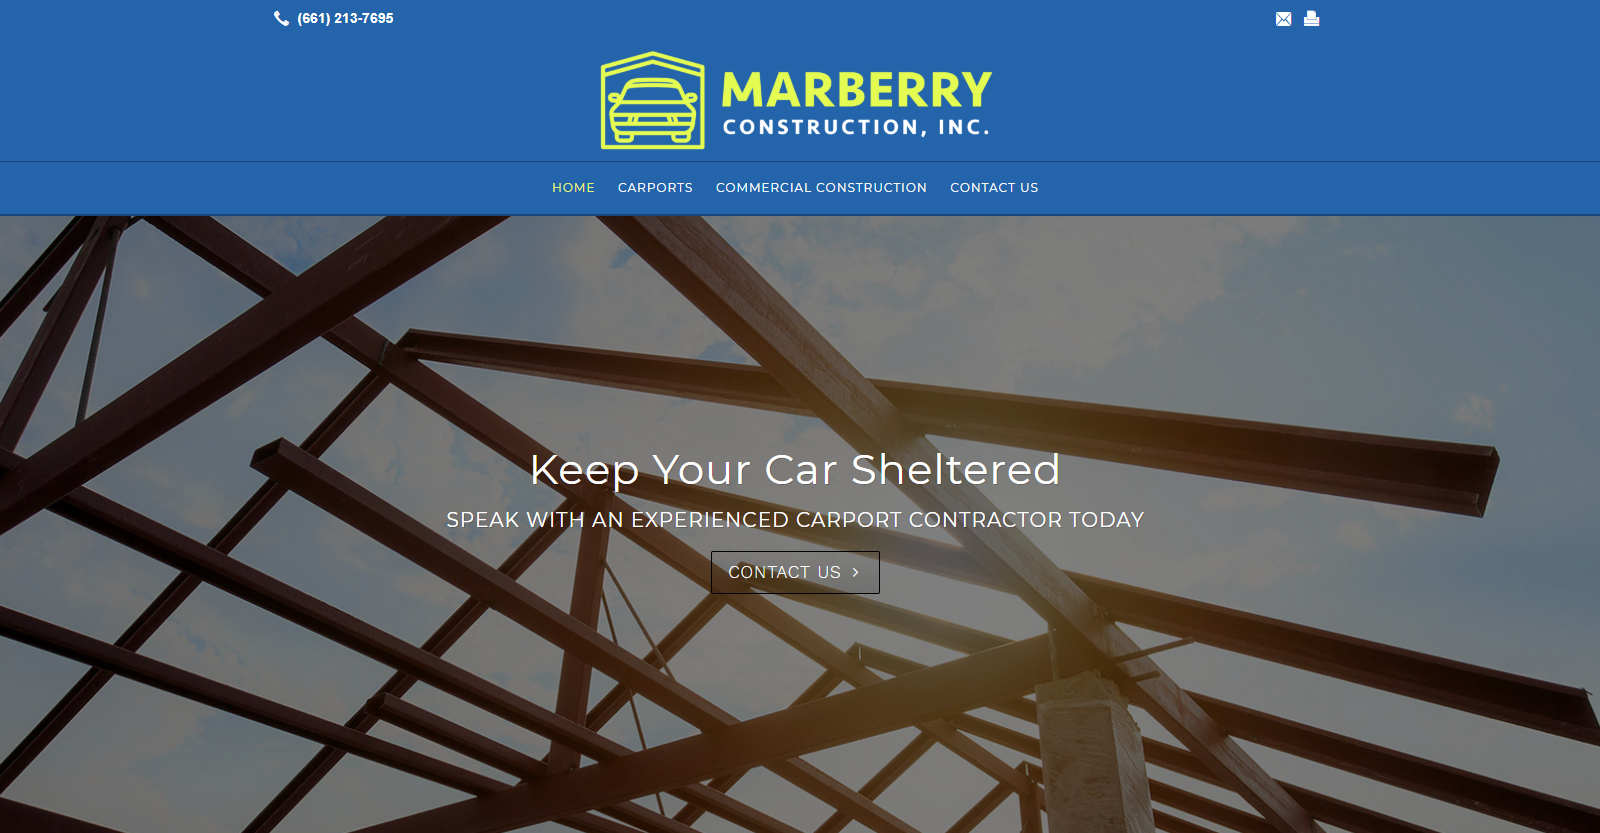 Cal-Ports, Marberry Construction, Inc. image 0